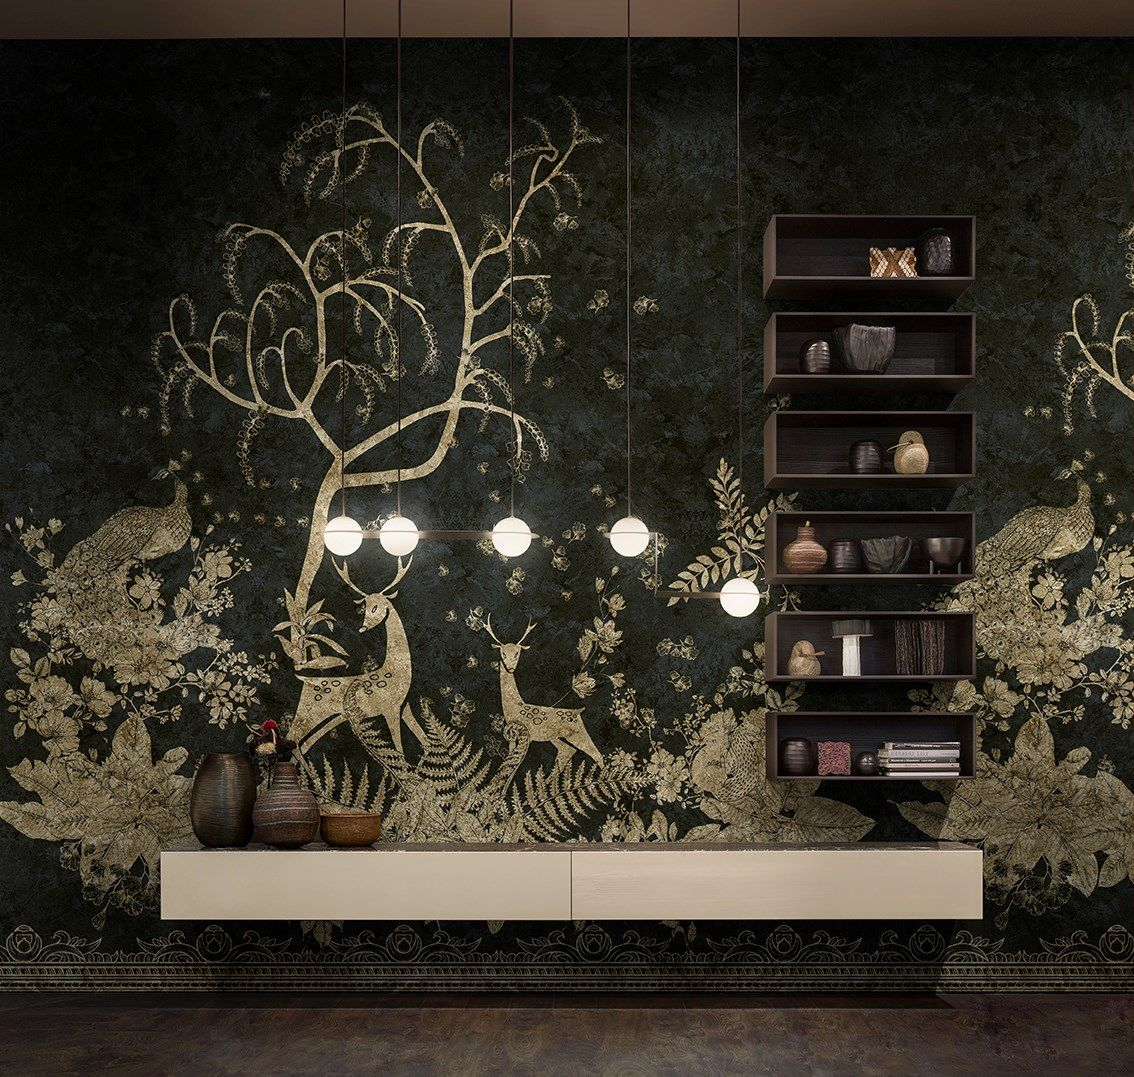 Art Déco Inspired Walls Golden glow, nature and geometry. GoldenWall Collection 2018 by Inkiostro Bianco